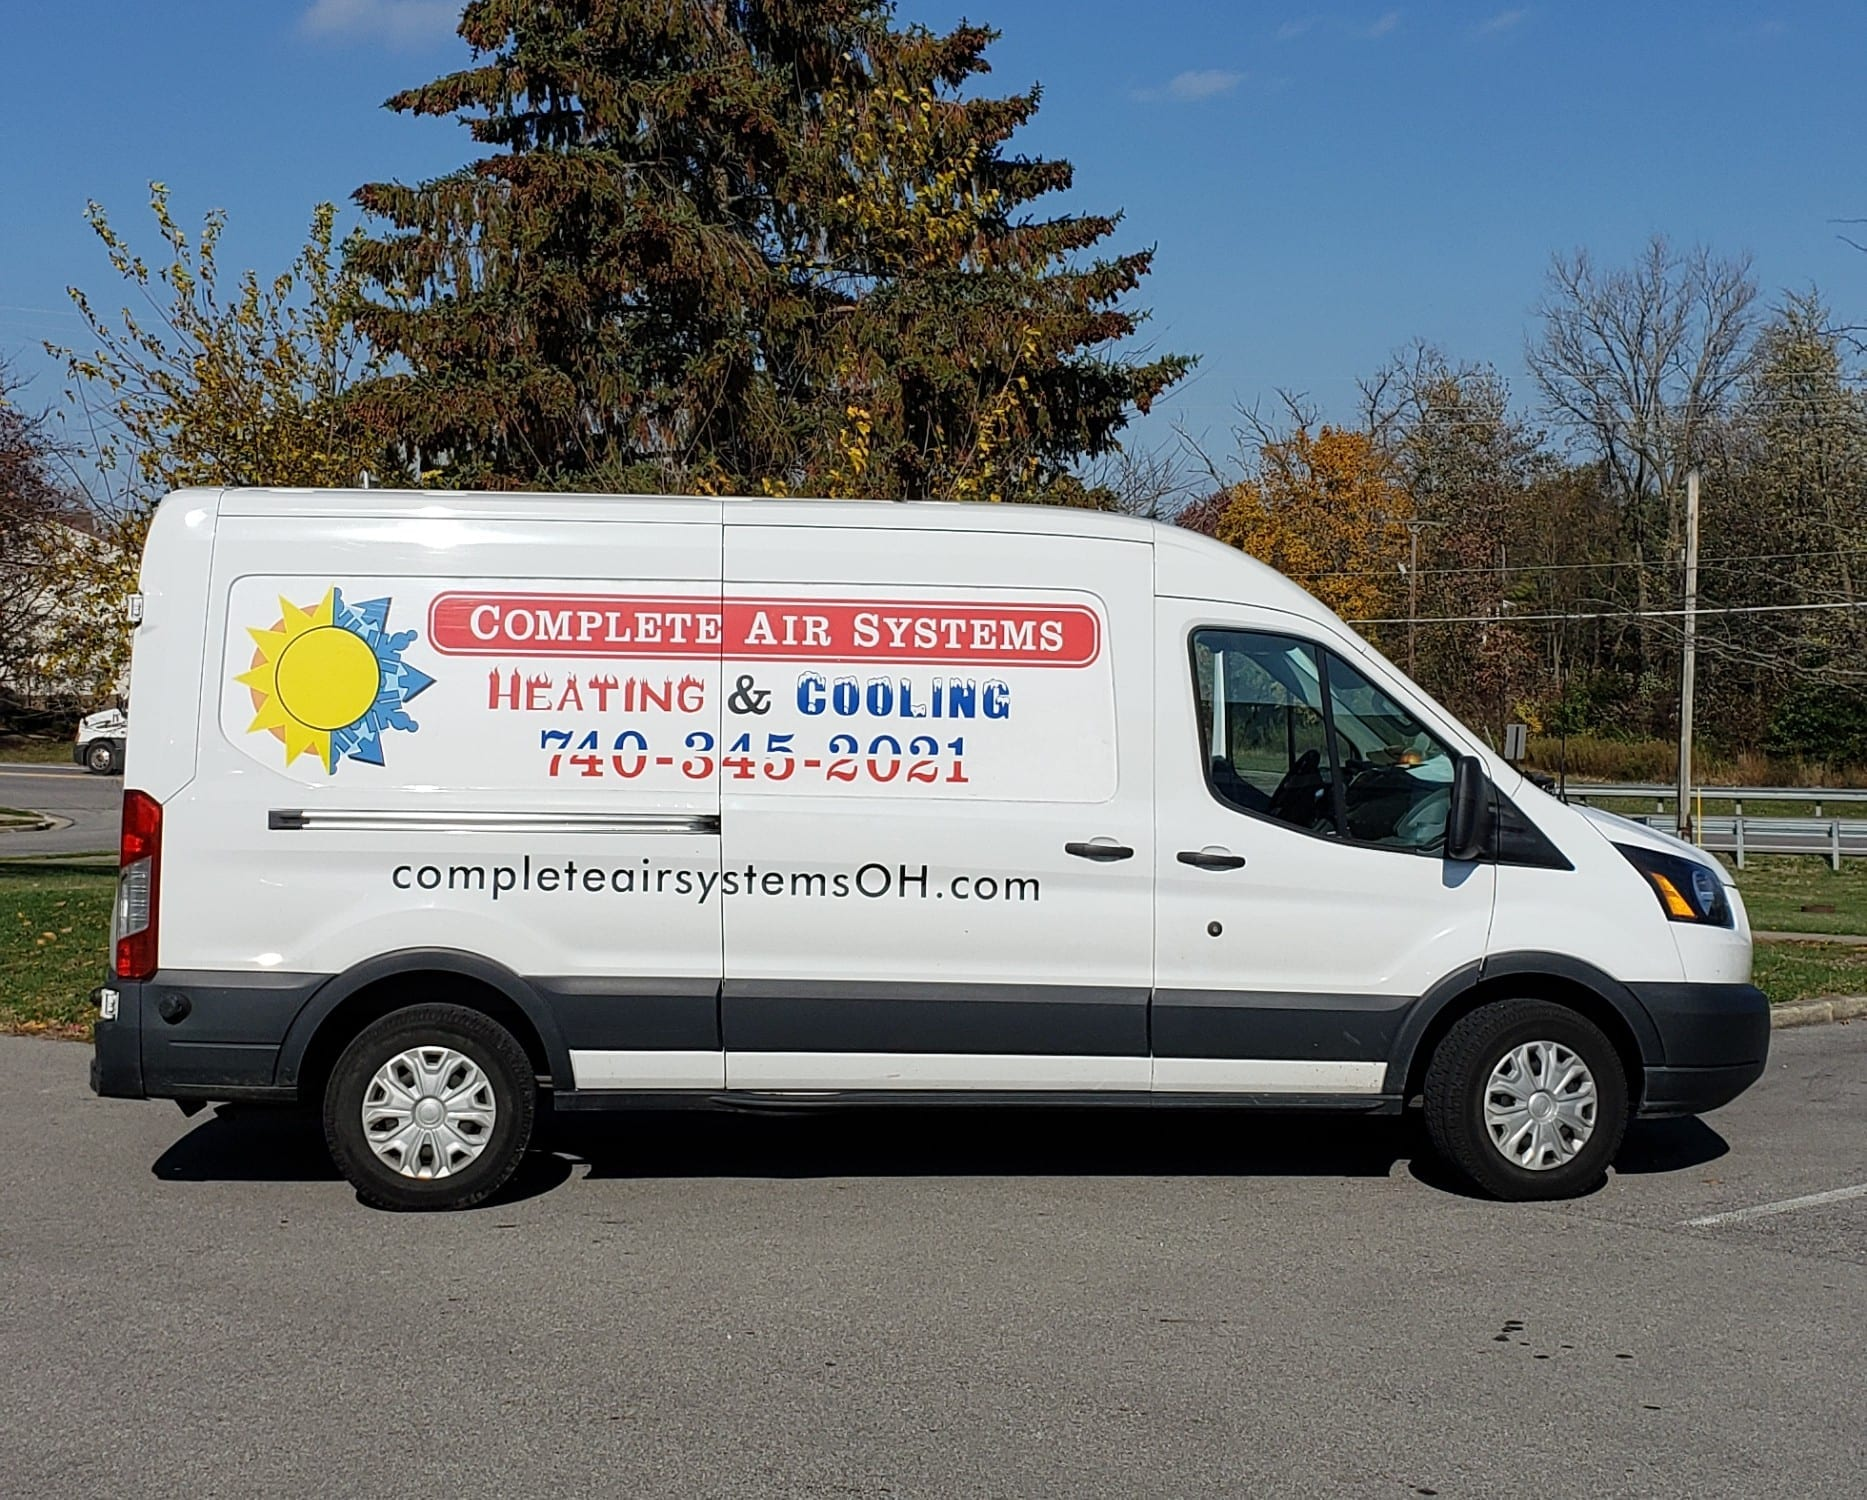 Complete Air Systems Heating and Cooling ohio